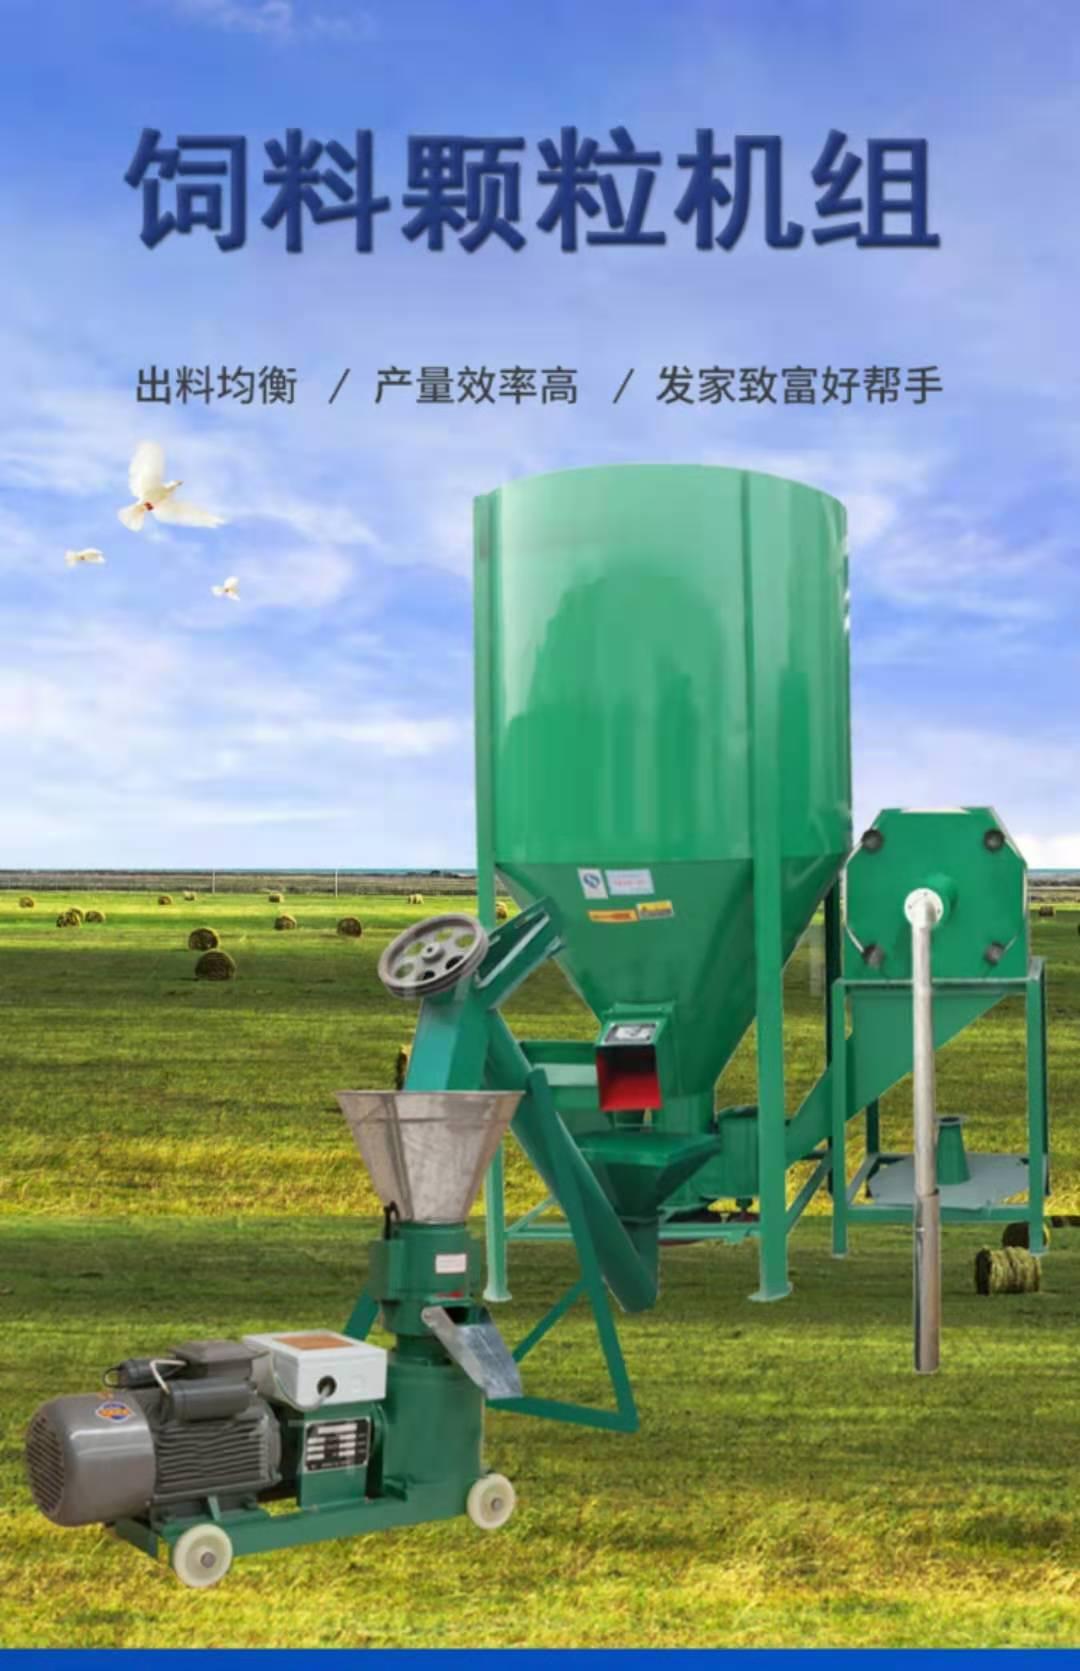 High-quality repurchase rate, high baking power varnish, large capacity mixer grinder machine